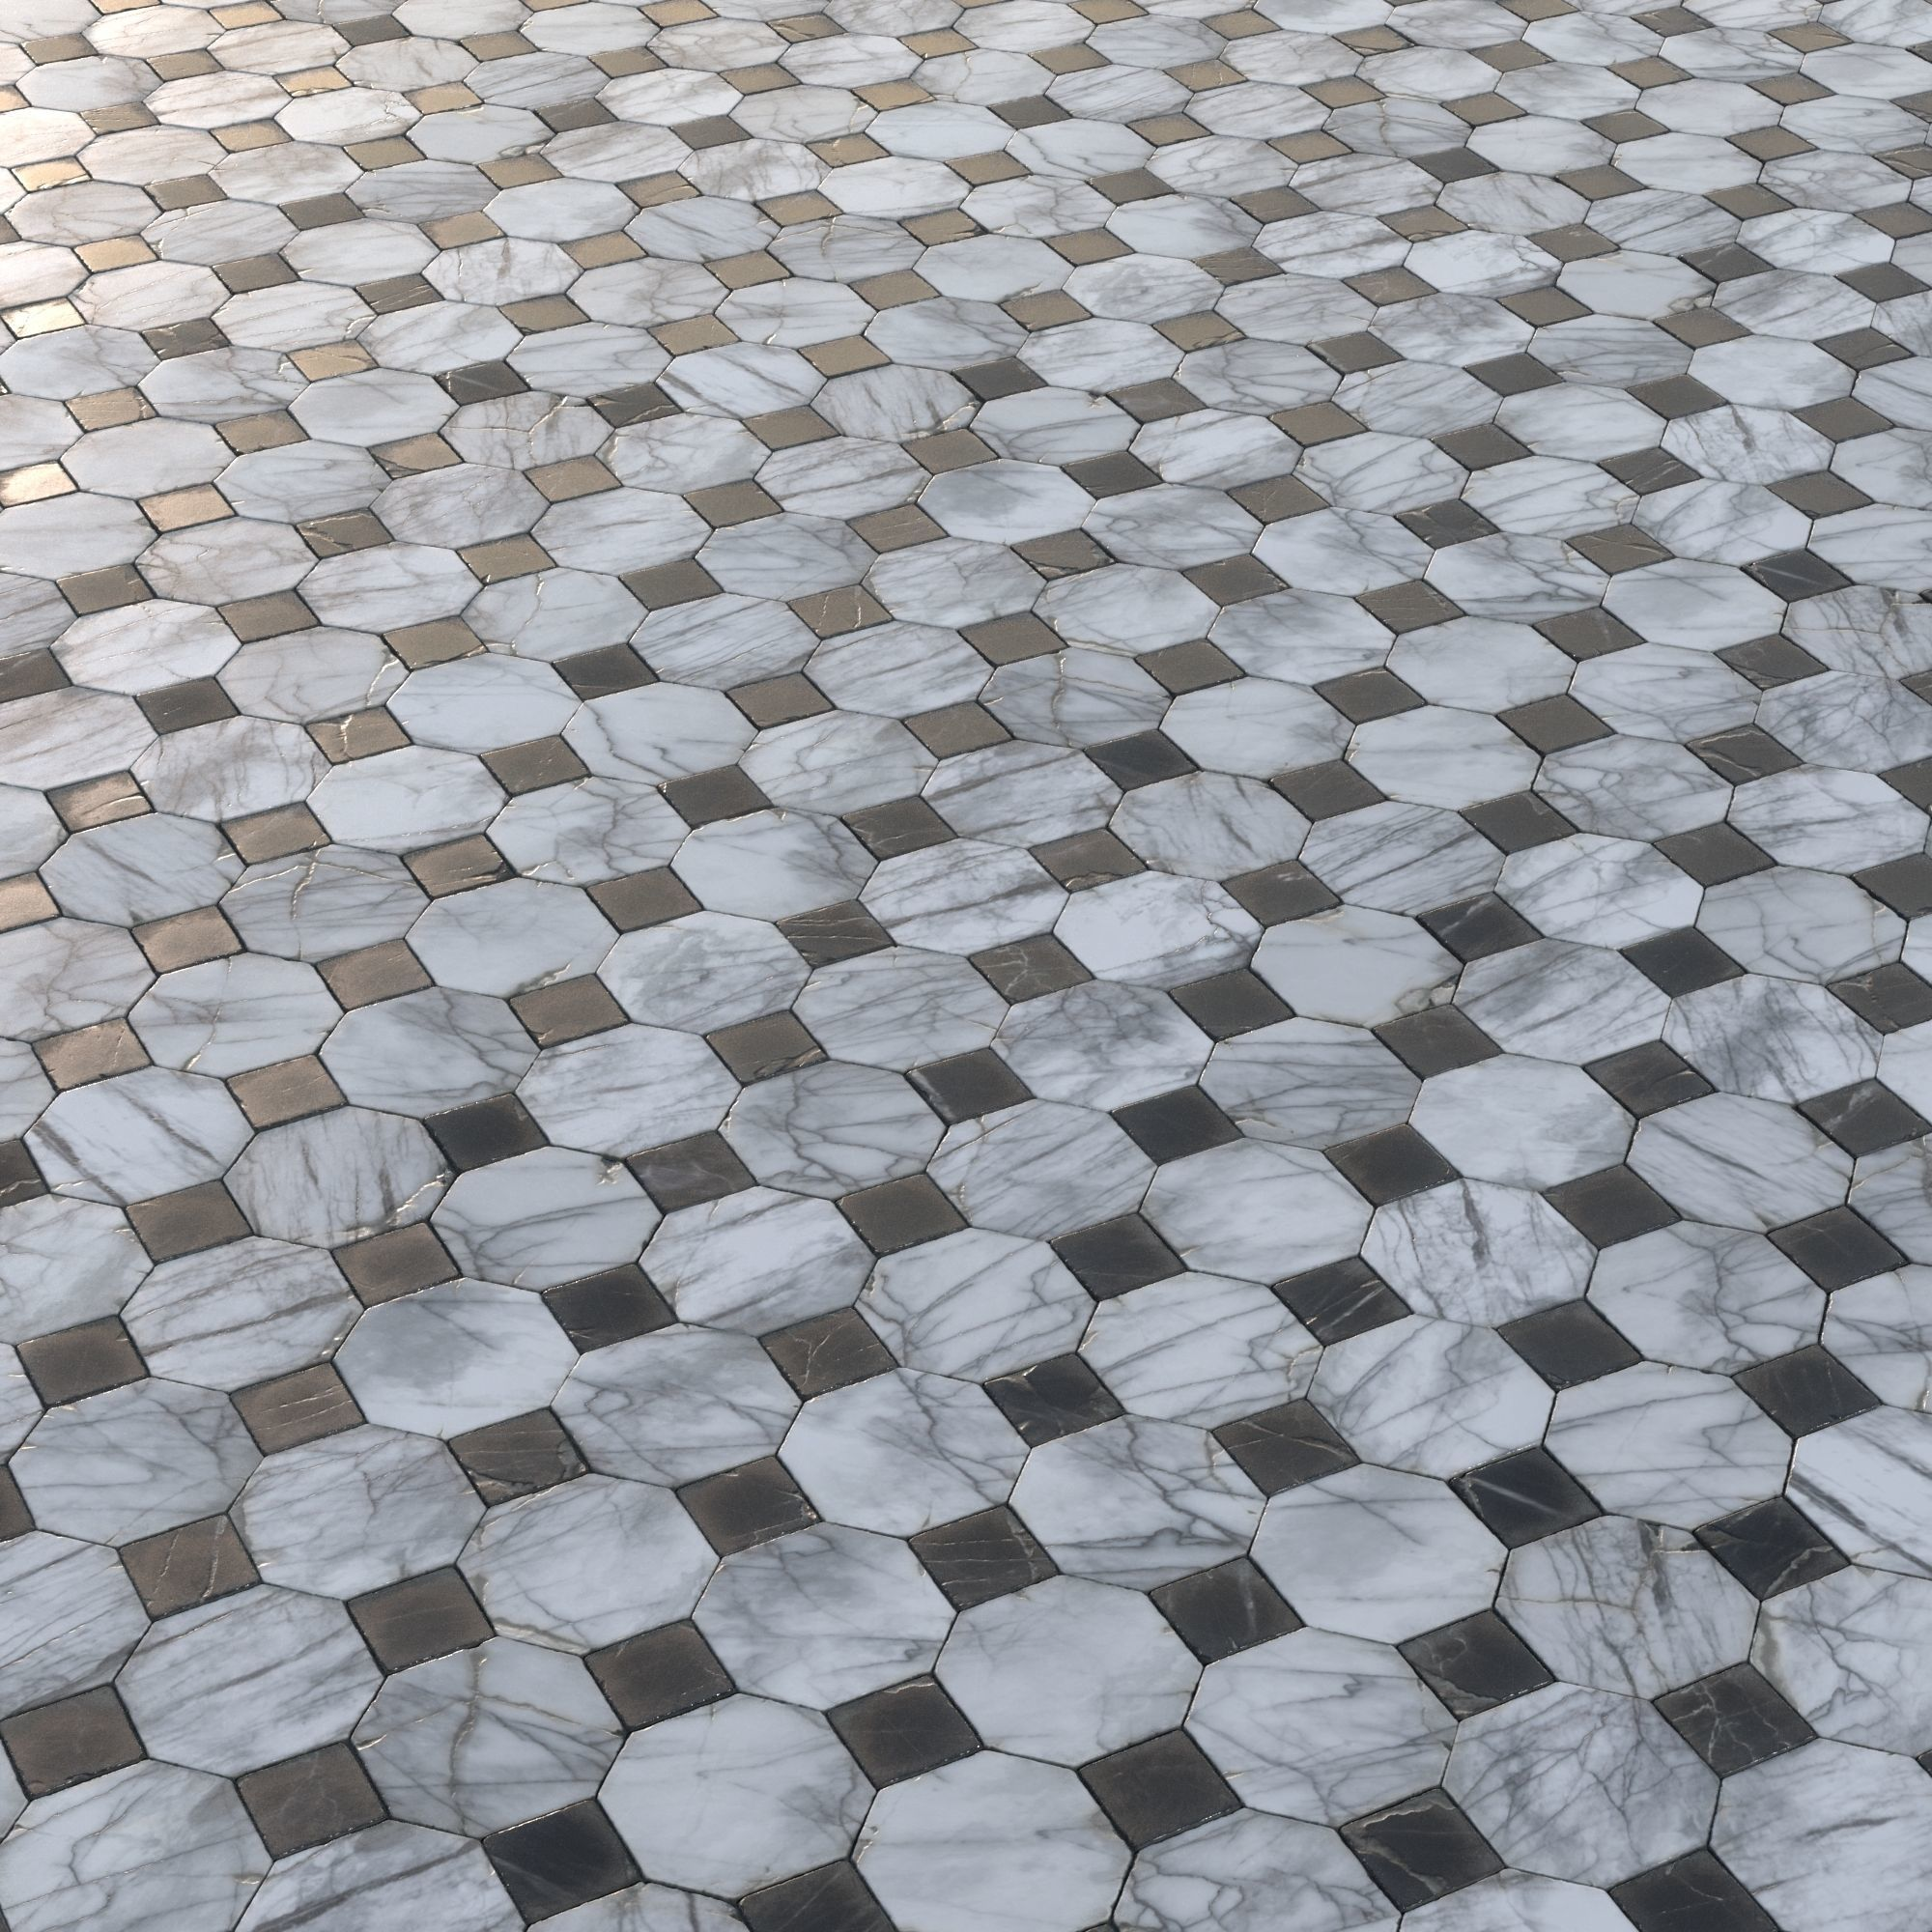 Aged Marble Tiles Pbr Material Model